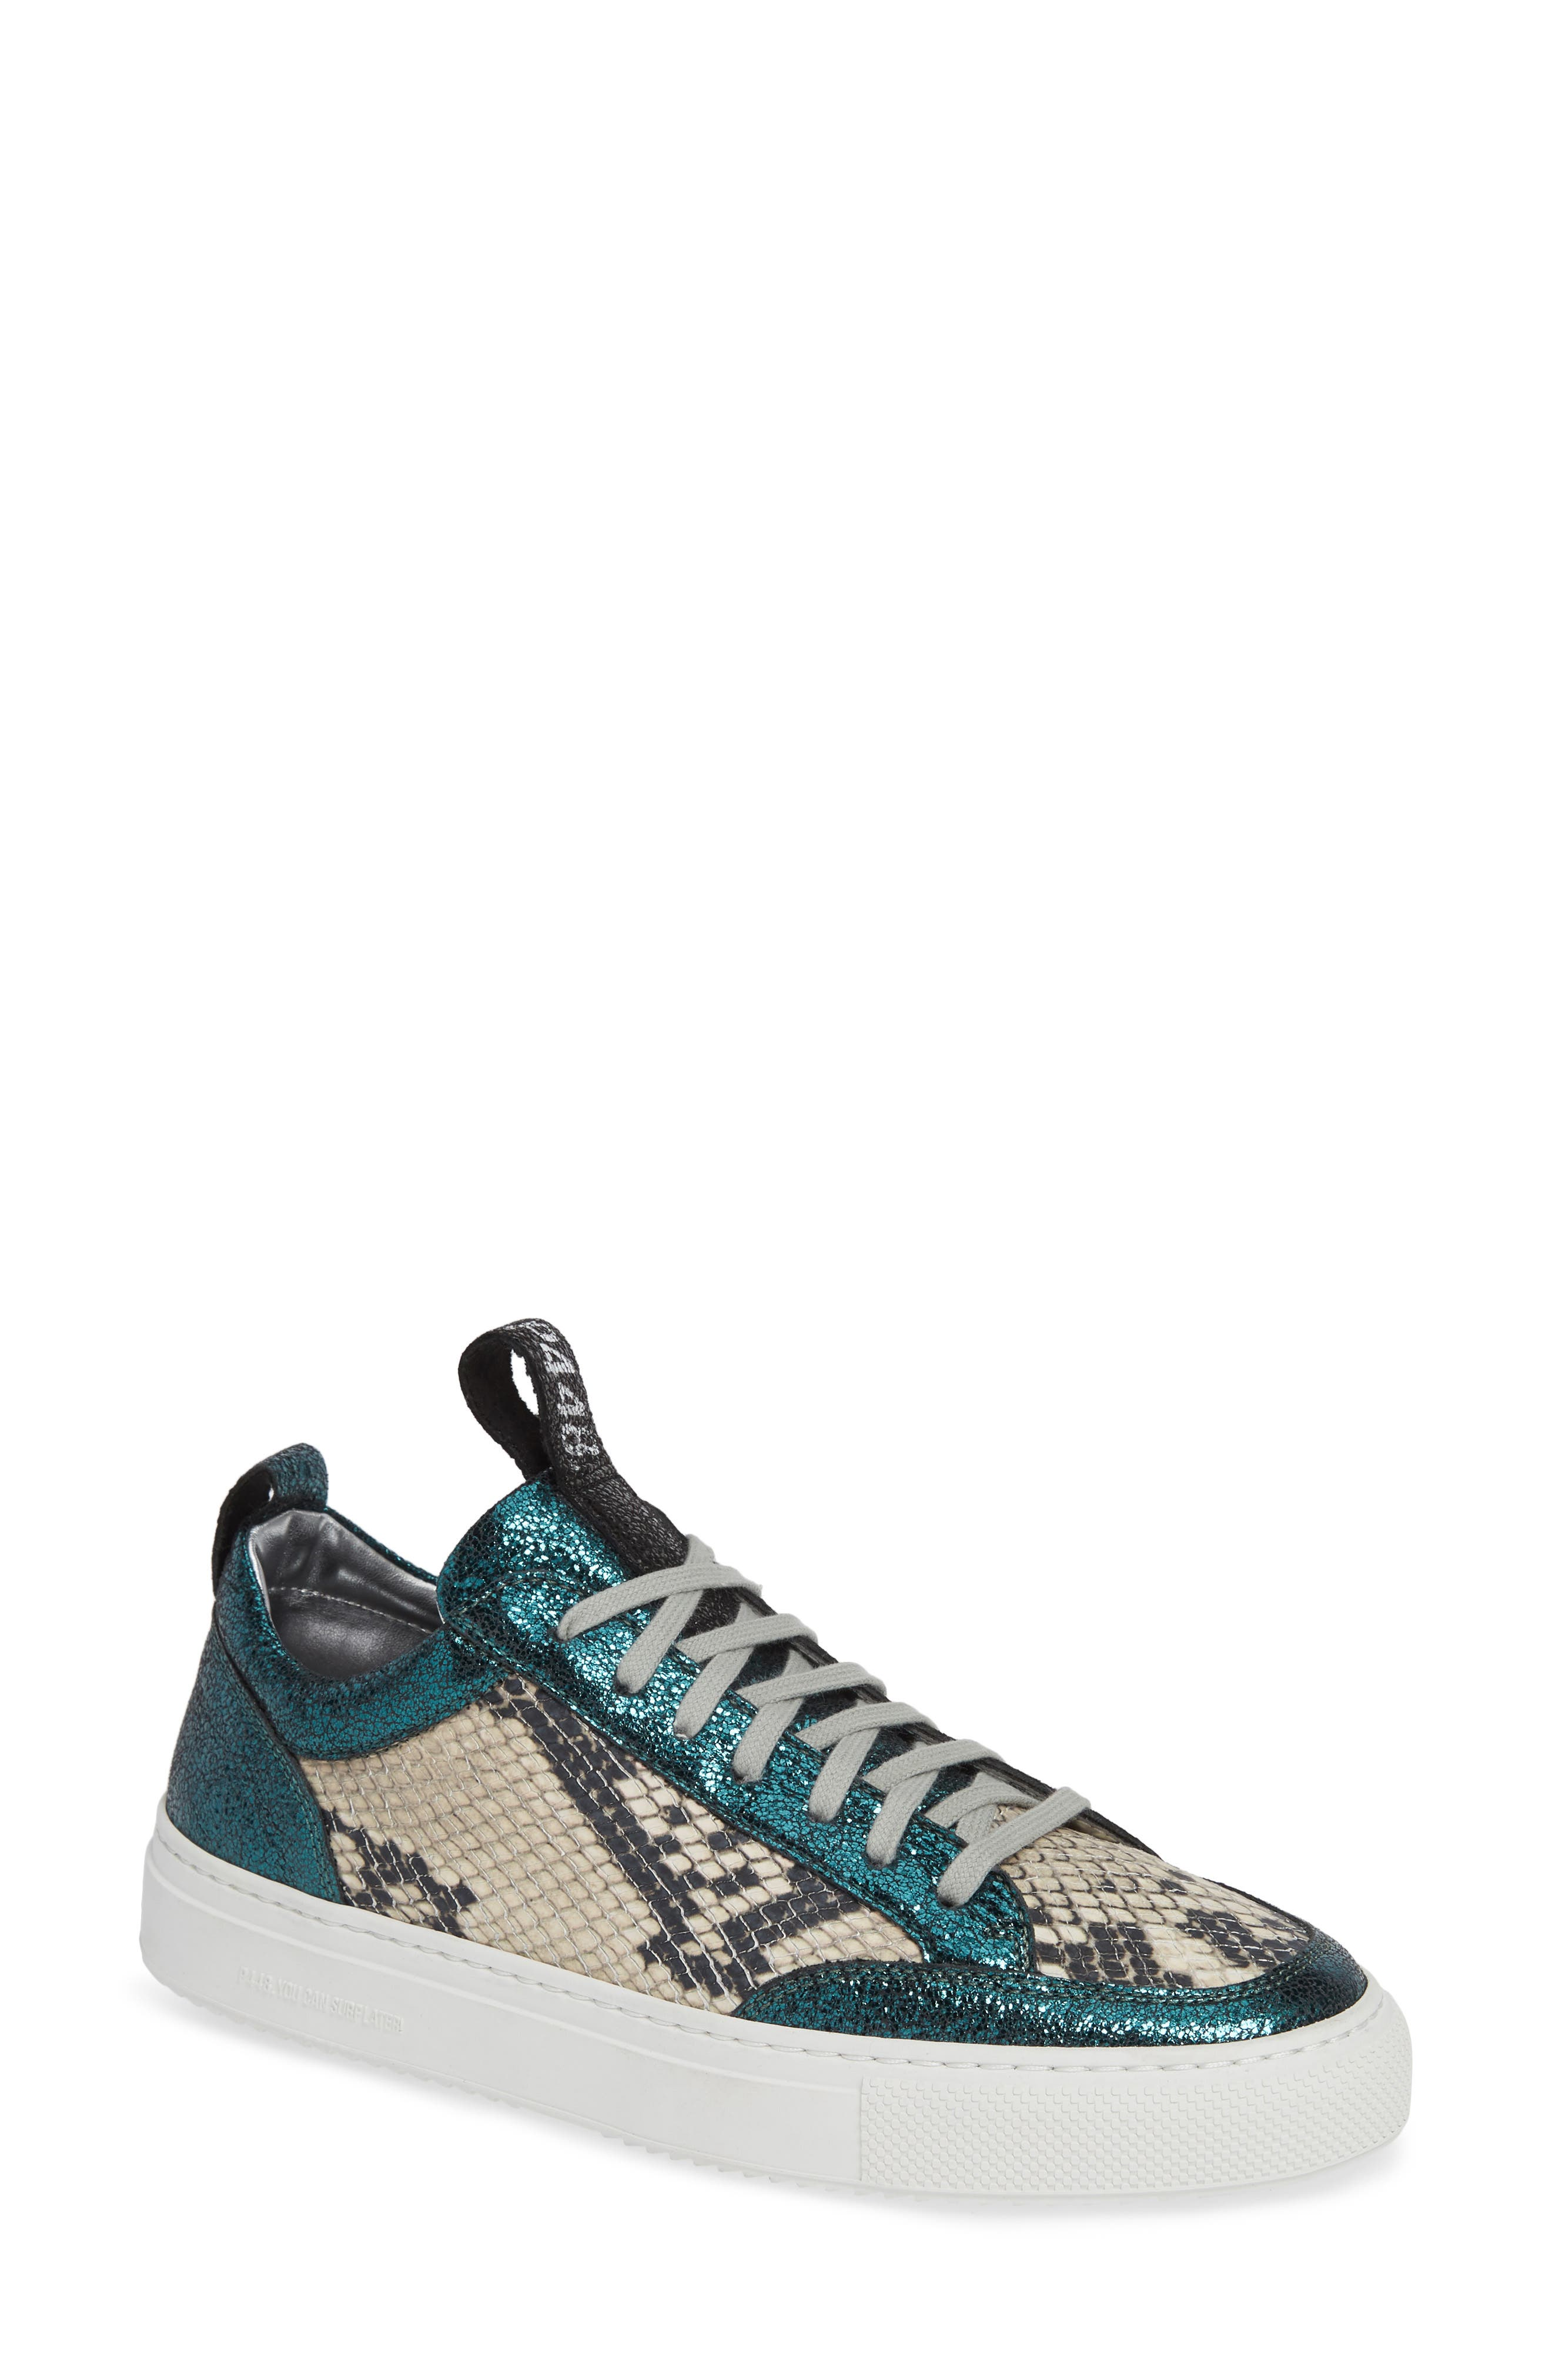 P448 Women'S Soho Crackled & Snake-Embossed Leather Lace-Up Sneakers in White/ Blue Sparkle